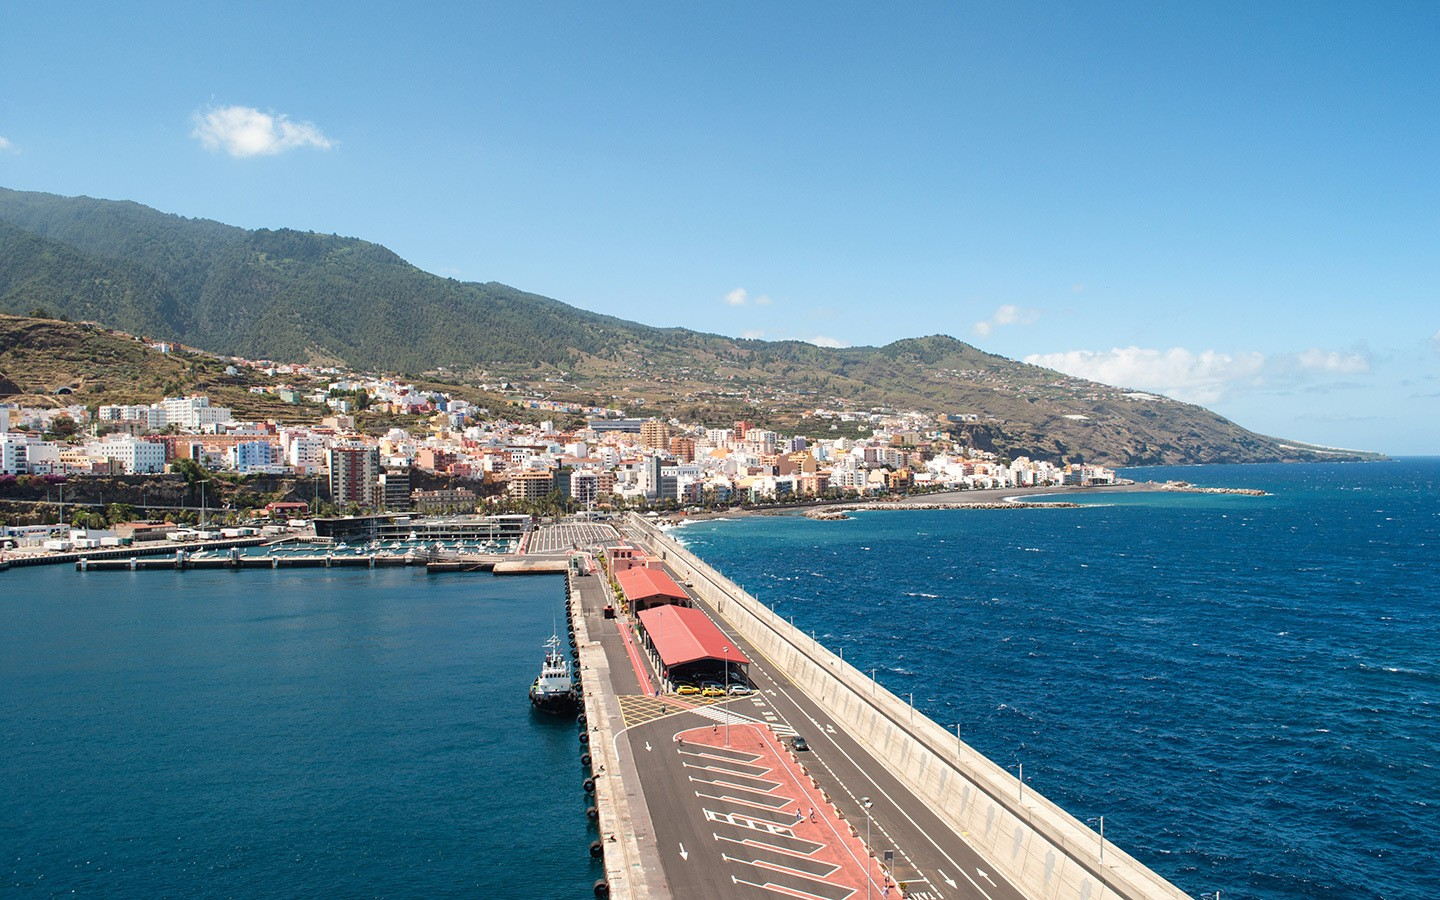 Docked in La Palma, Canary Islands